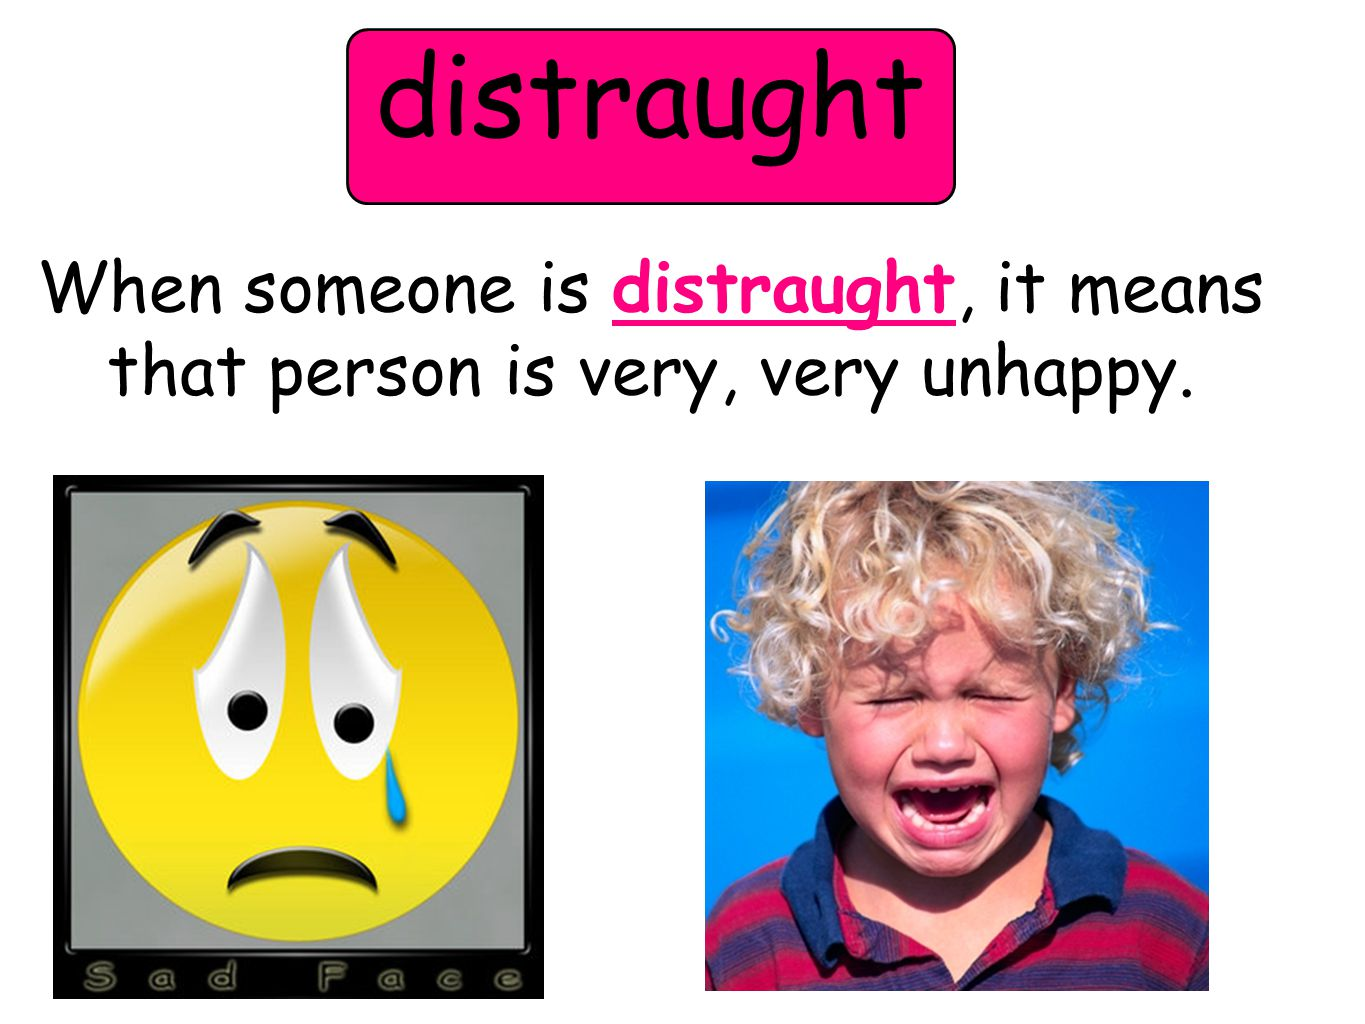 distraught When someone is distraught, it means that person is very, very unhappy.